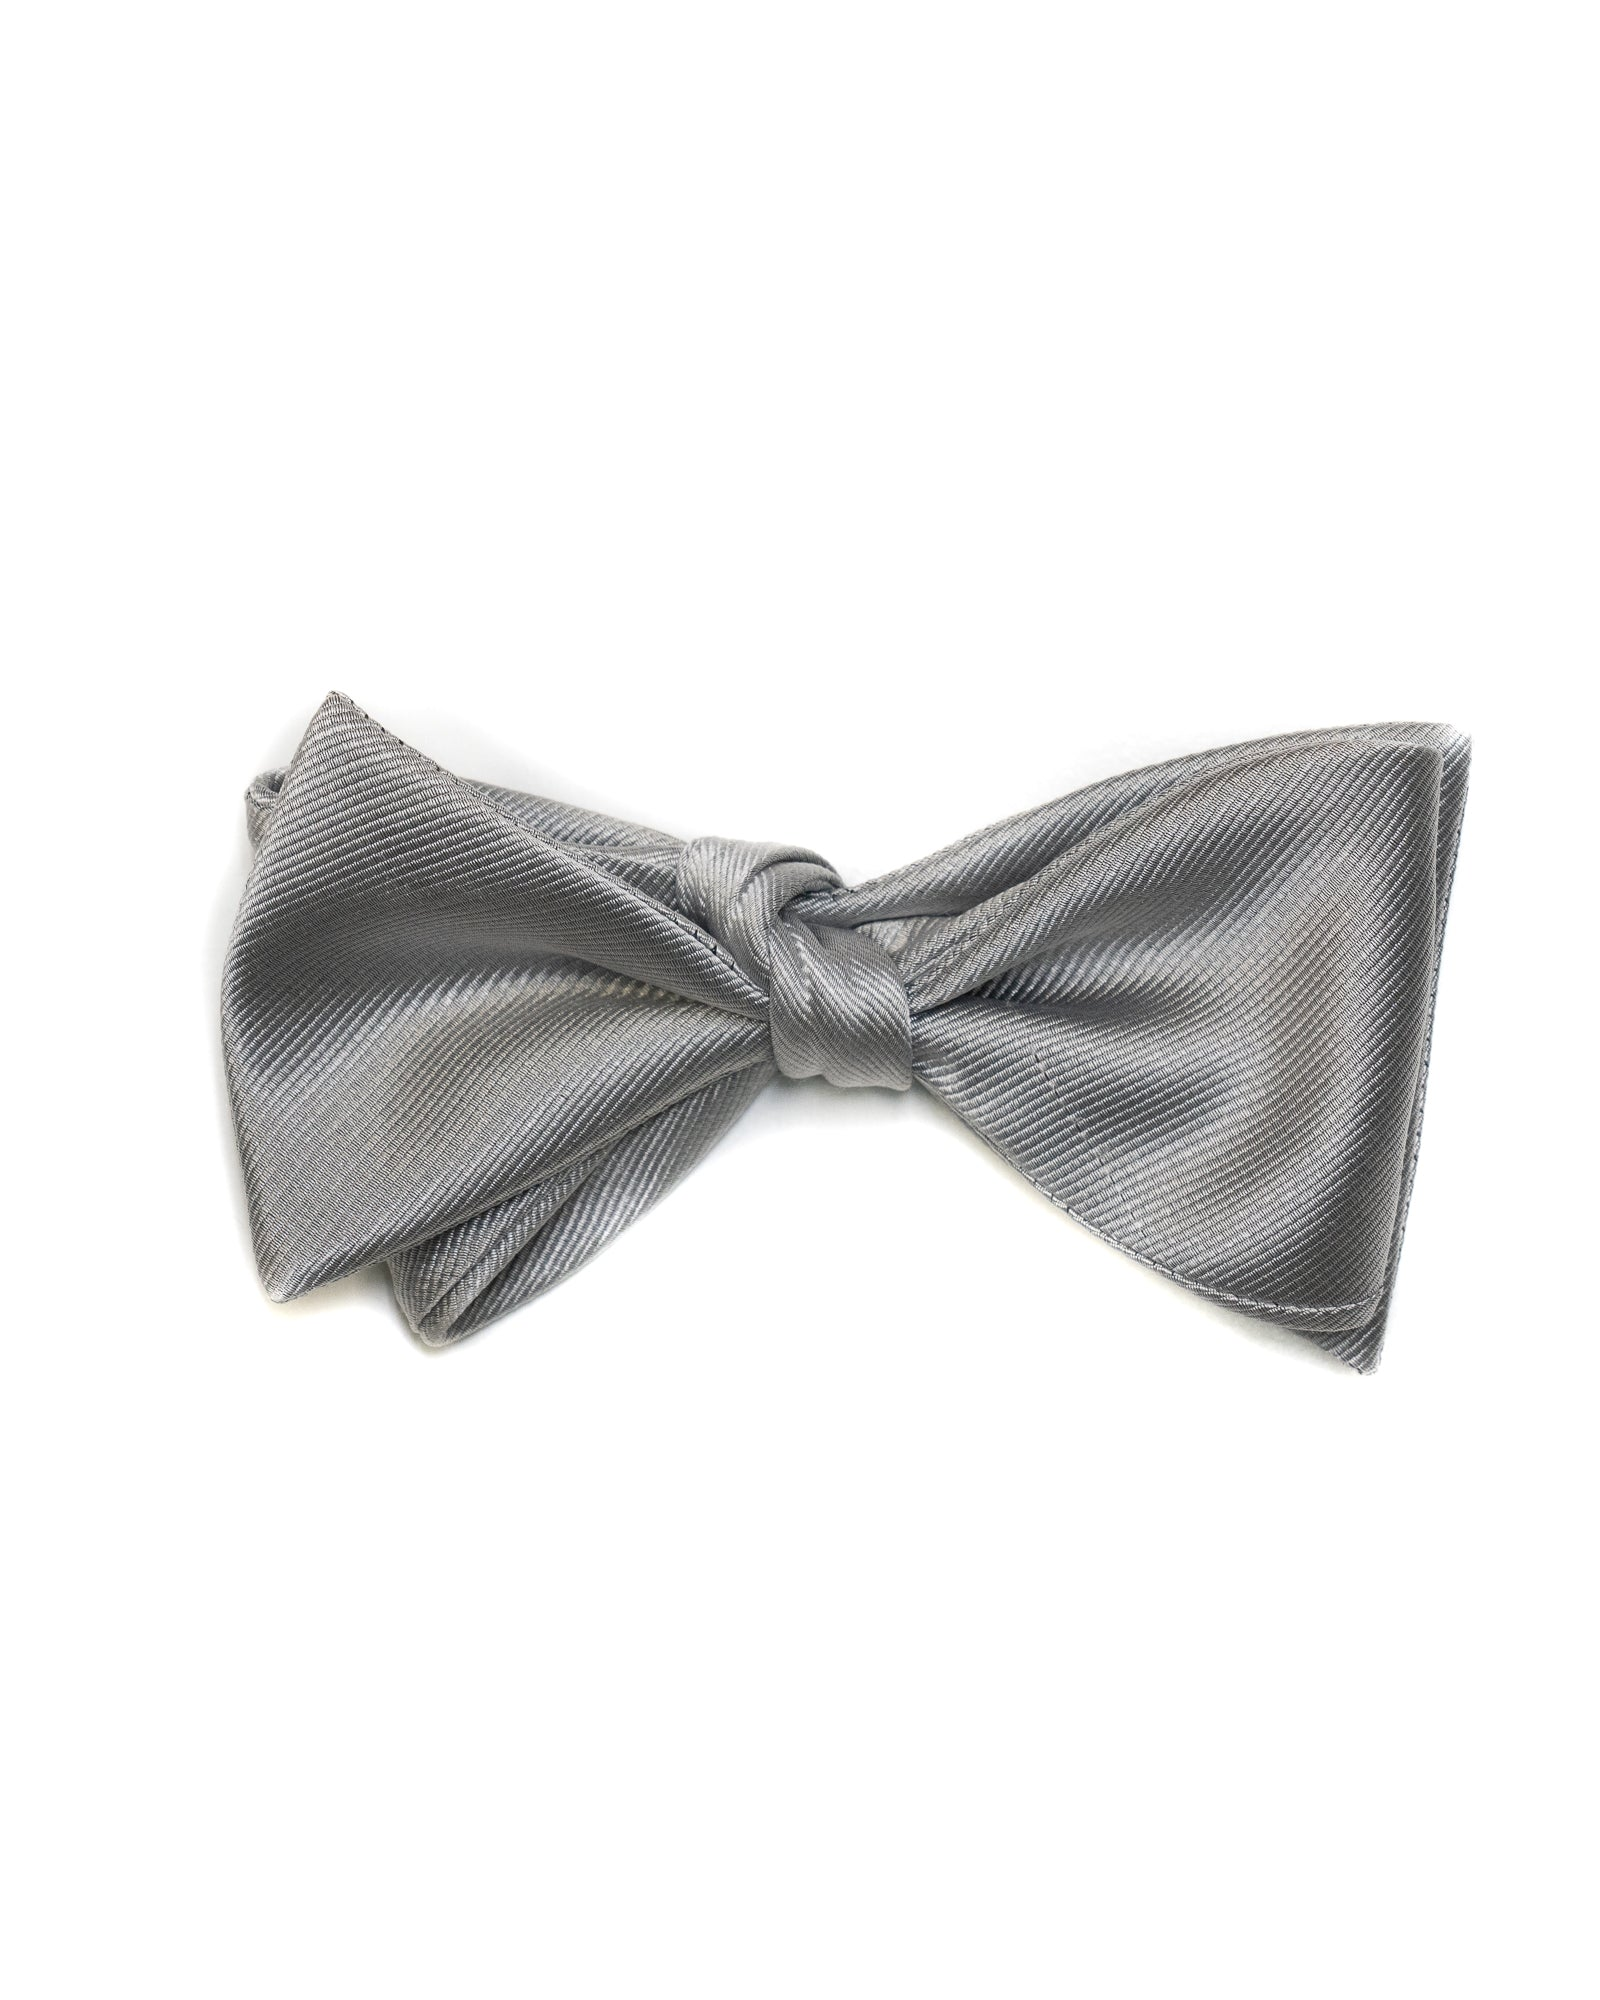 Self Tie All Silk Bow Tie In Silver Ribbed Solid - Rainwater's Men's Clothing and Tuxedo Rental